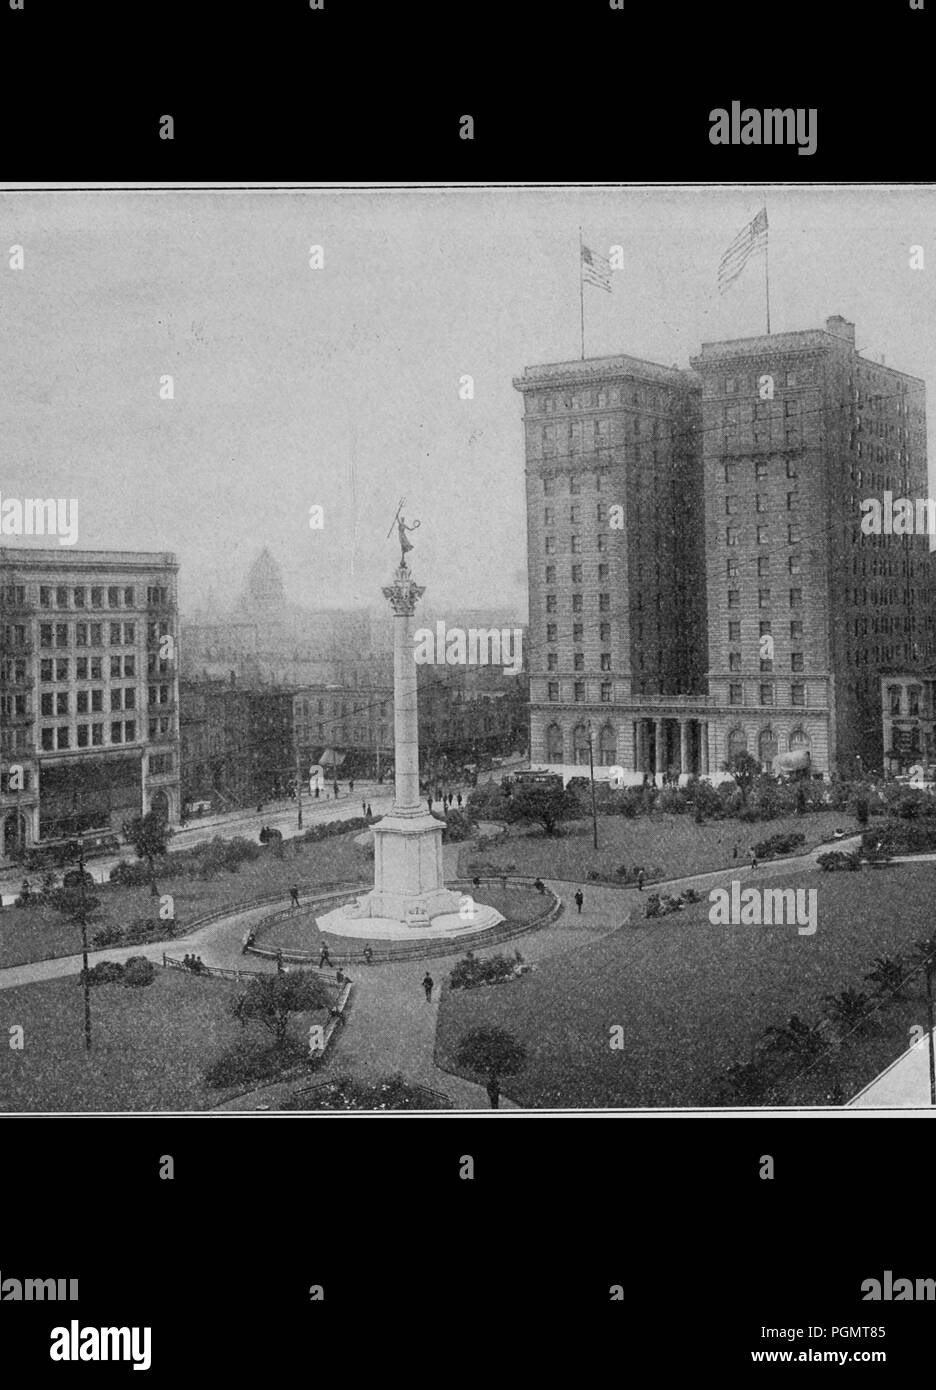 Black and white photograph showing a monument to Admiral Dewey's victory in the Bay of Manilla, and several multi-story buildings ringing Union Square in downtown San Francisco, as they appeared before San Francisco's 1906 earthquake, 1906. Courtesy Internet Archive. () - Stock Image